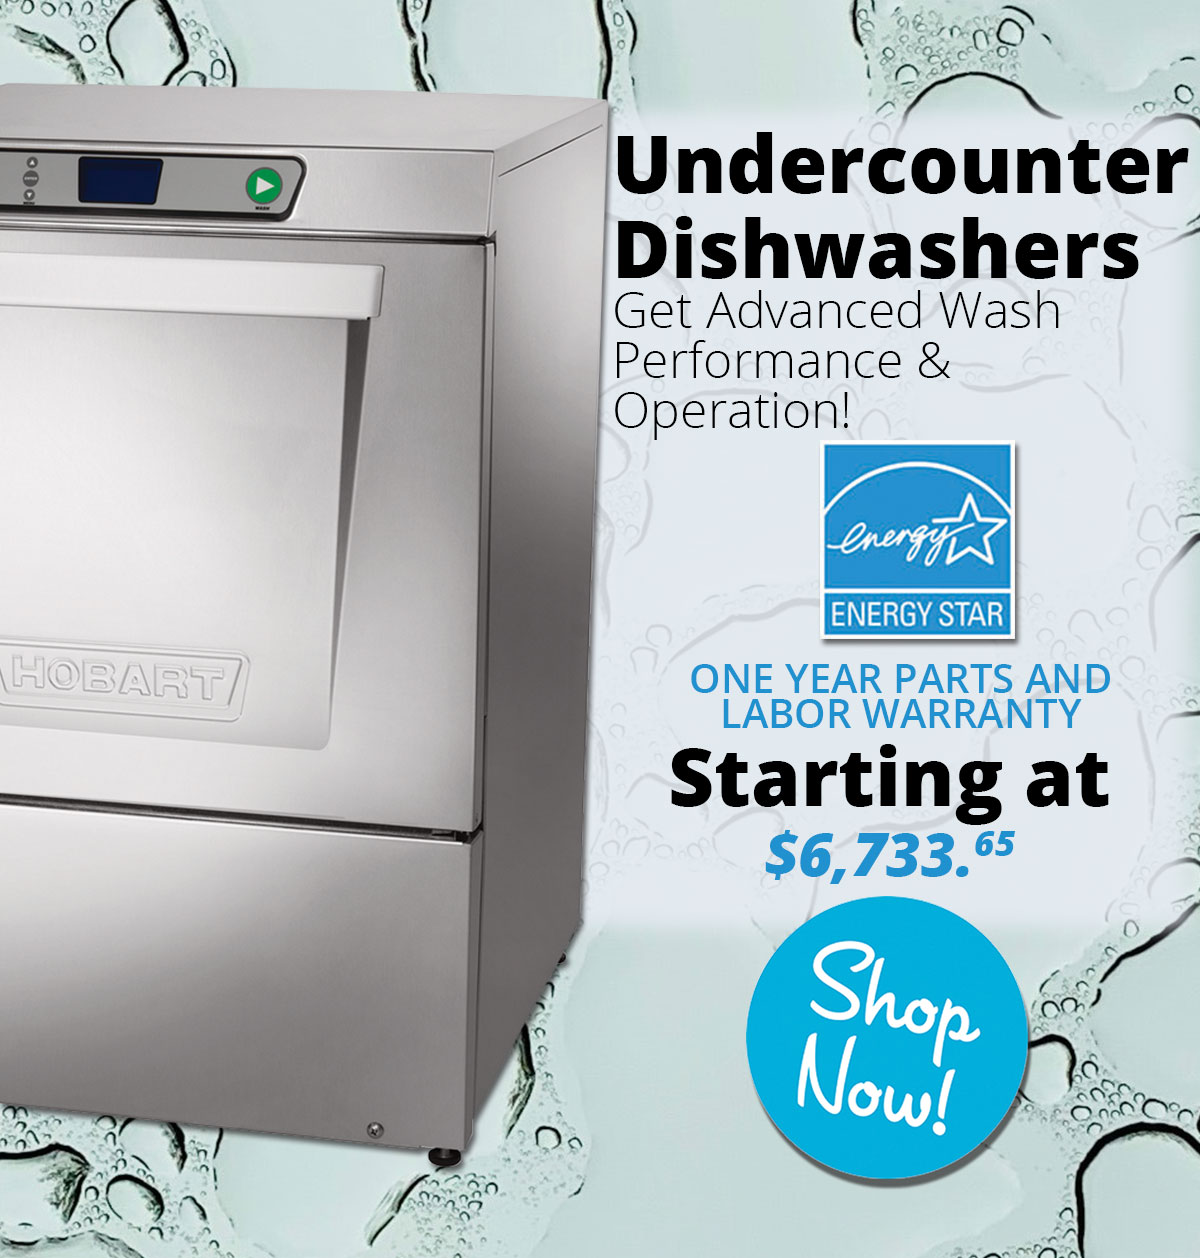 Hobart Undercount Dishwashers starting at $6,733.65